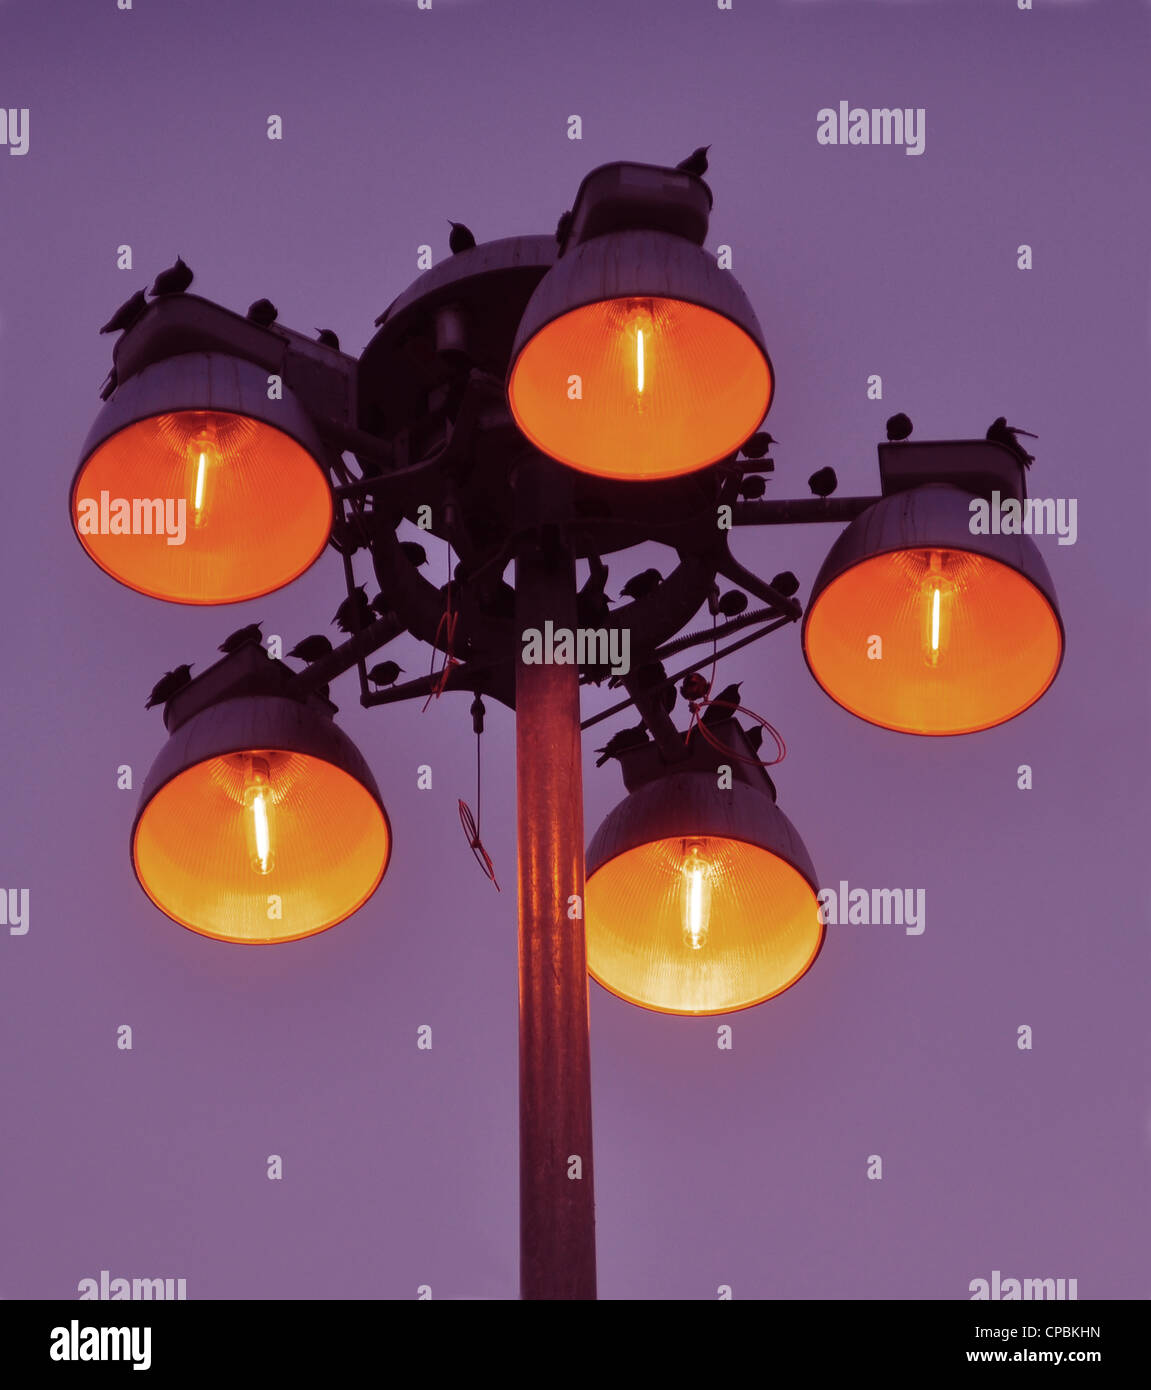 Birds rousting for the night on top of a street light - Stock Image